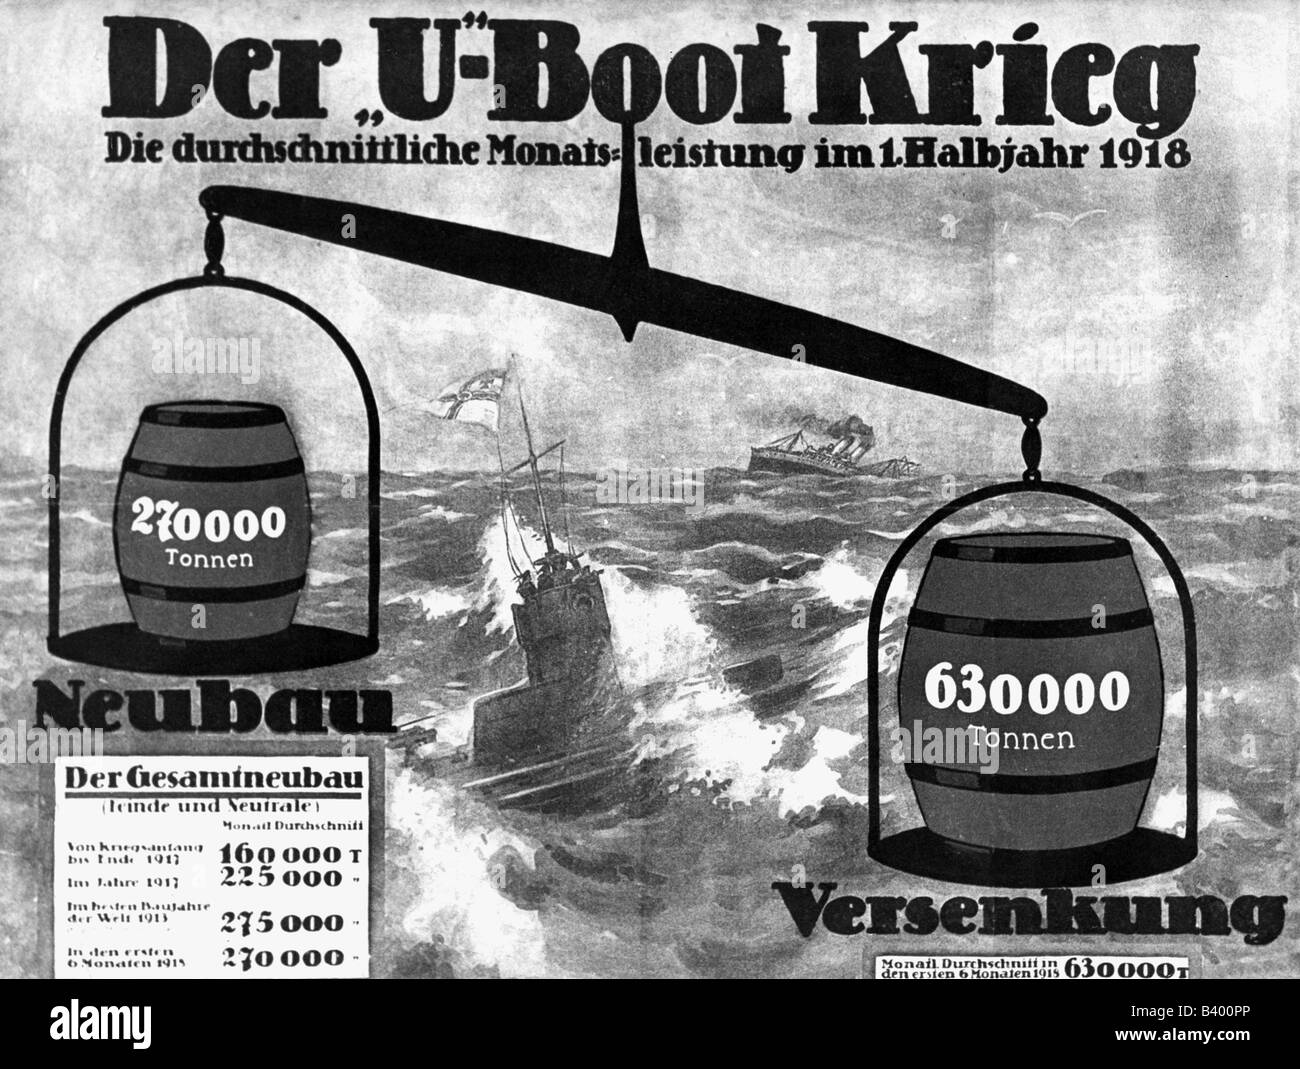 events, First World War / WWI, propaganda, poster, illustration of the submarine successes 1918, Germany, 1918, - Stock Image